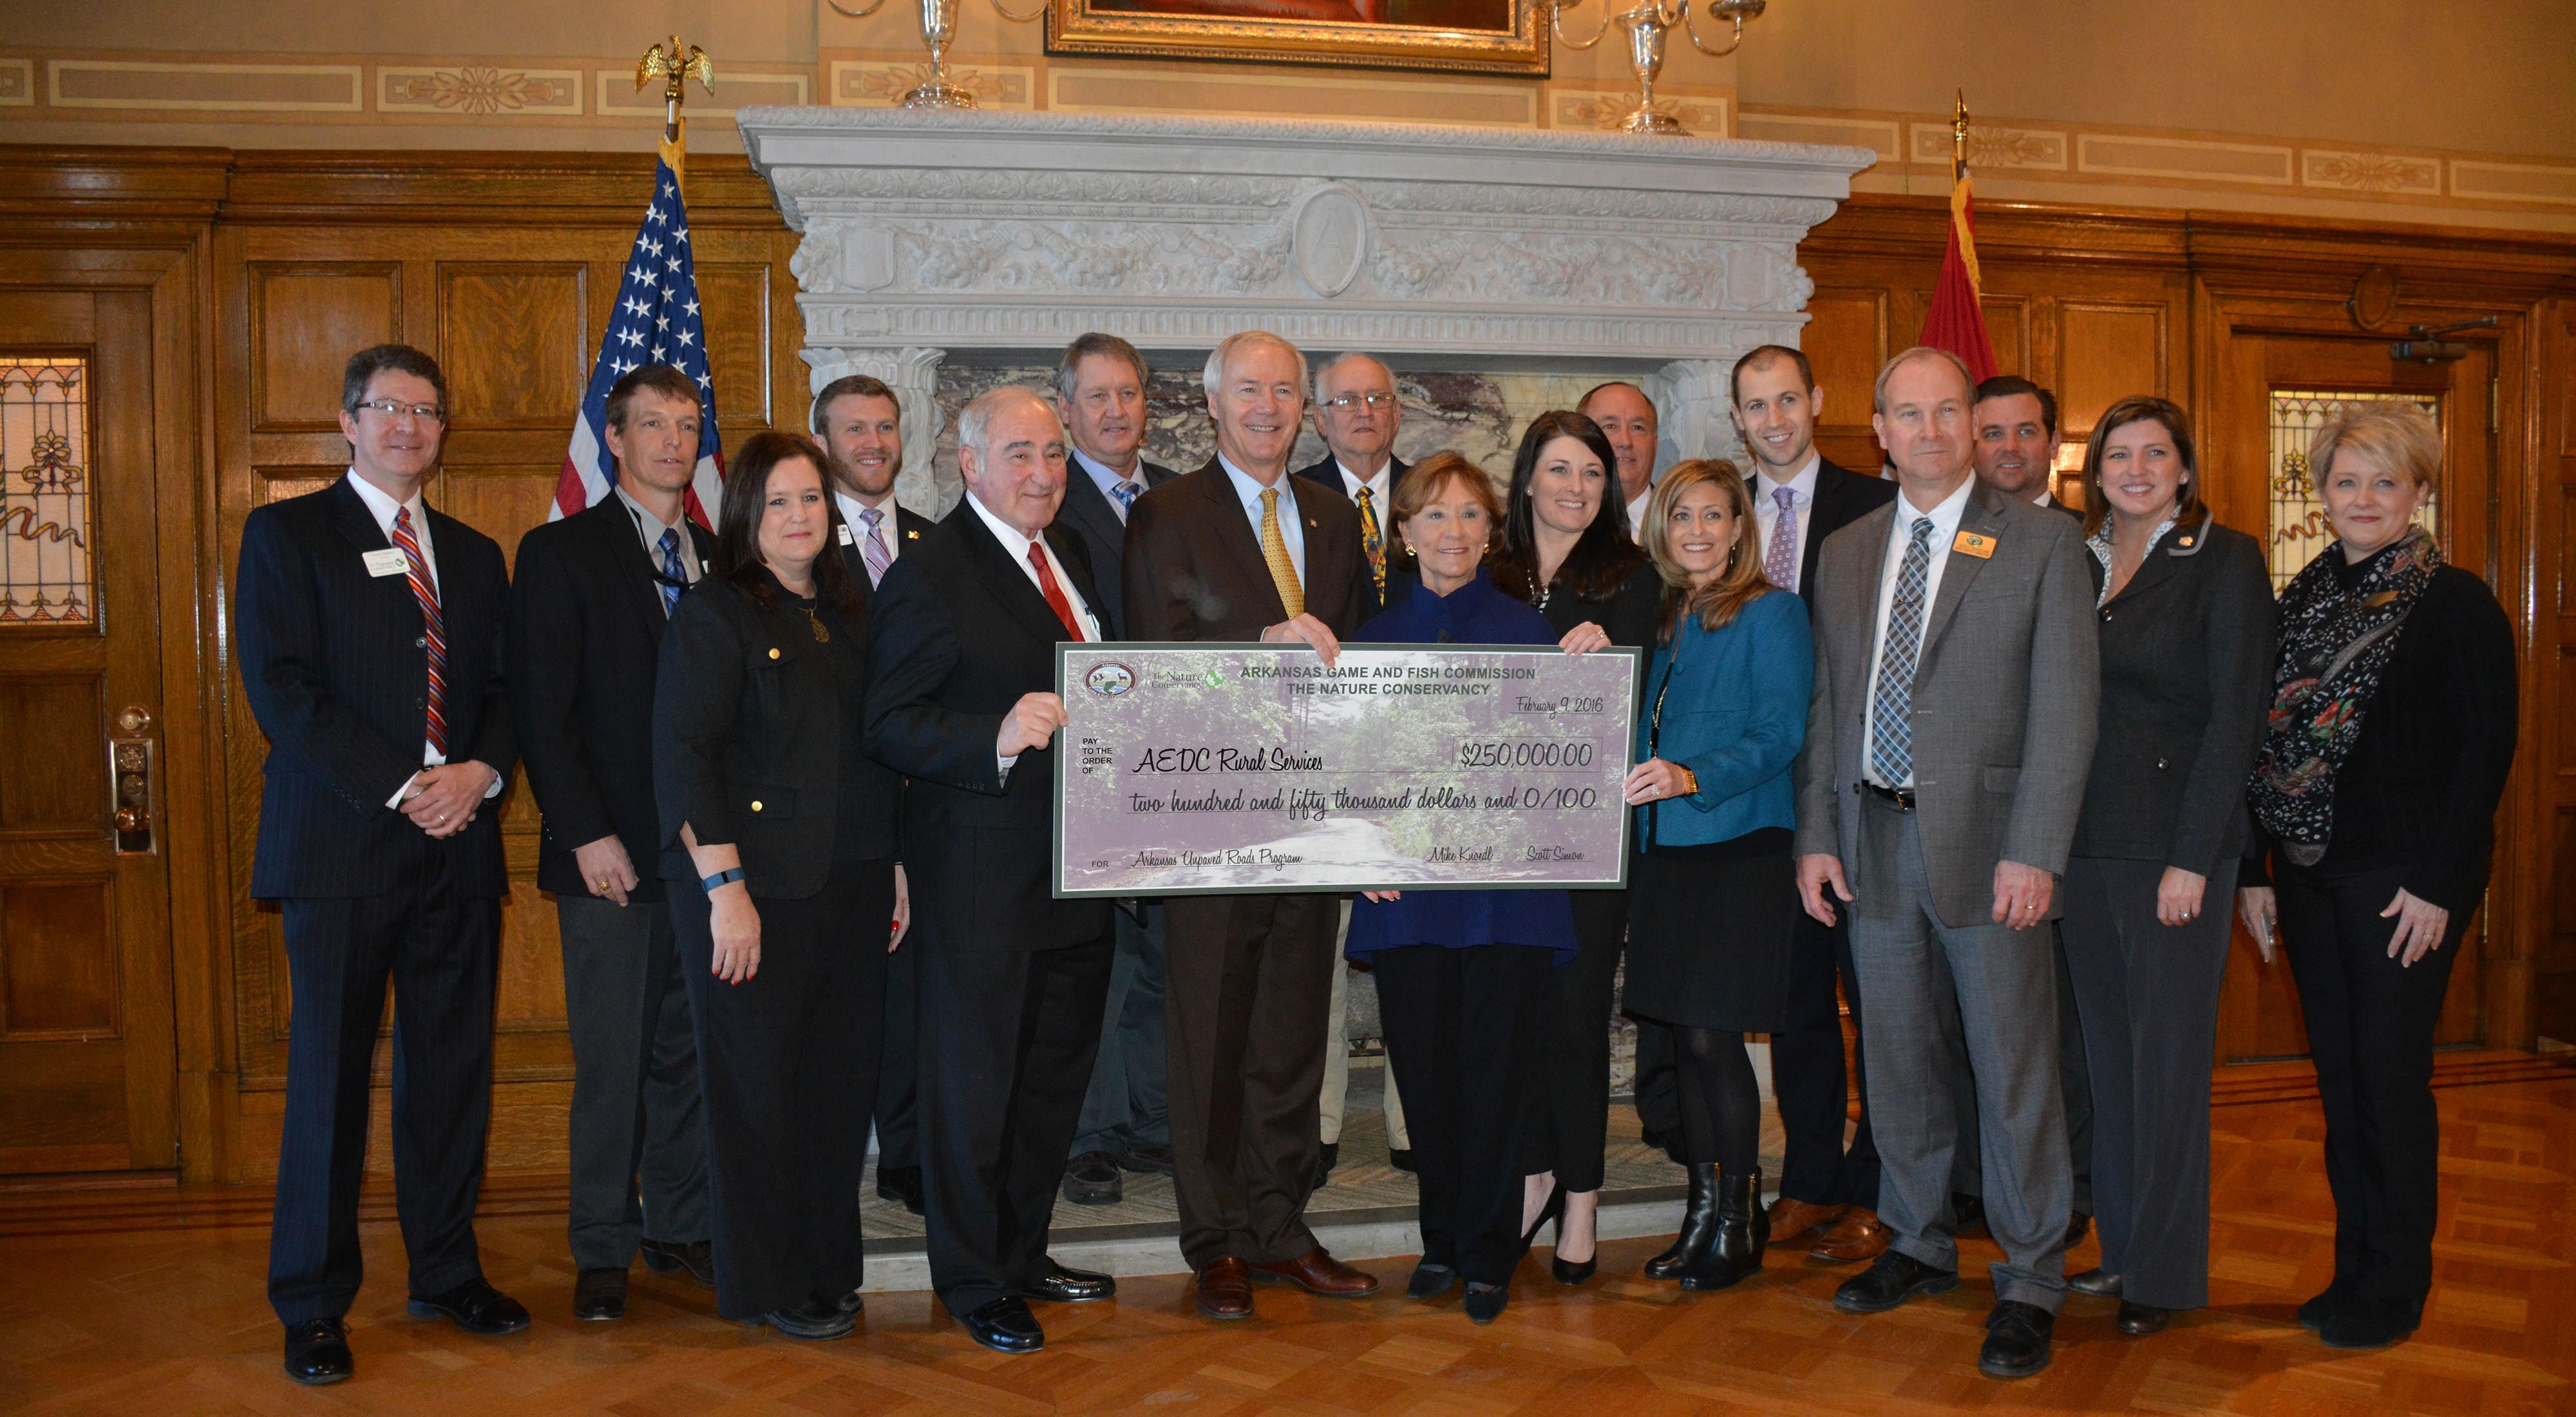 The Arkansas Game and Fish Commission and The Nature Conservancy present Governor Asa Hutchinson and the Department of Rural Services with a check to support the Unpaved Roads Program.